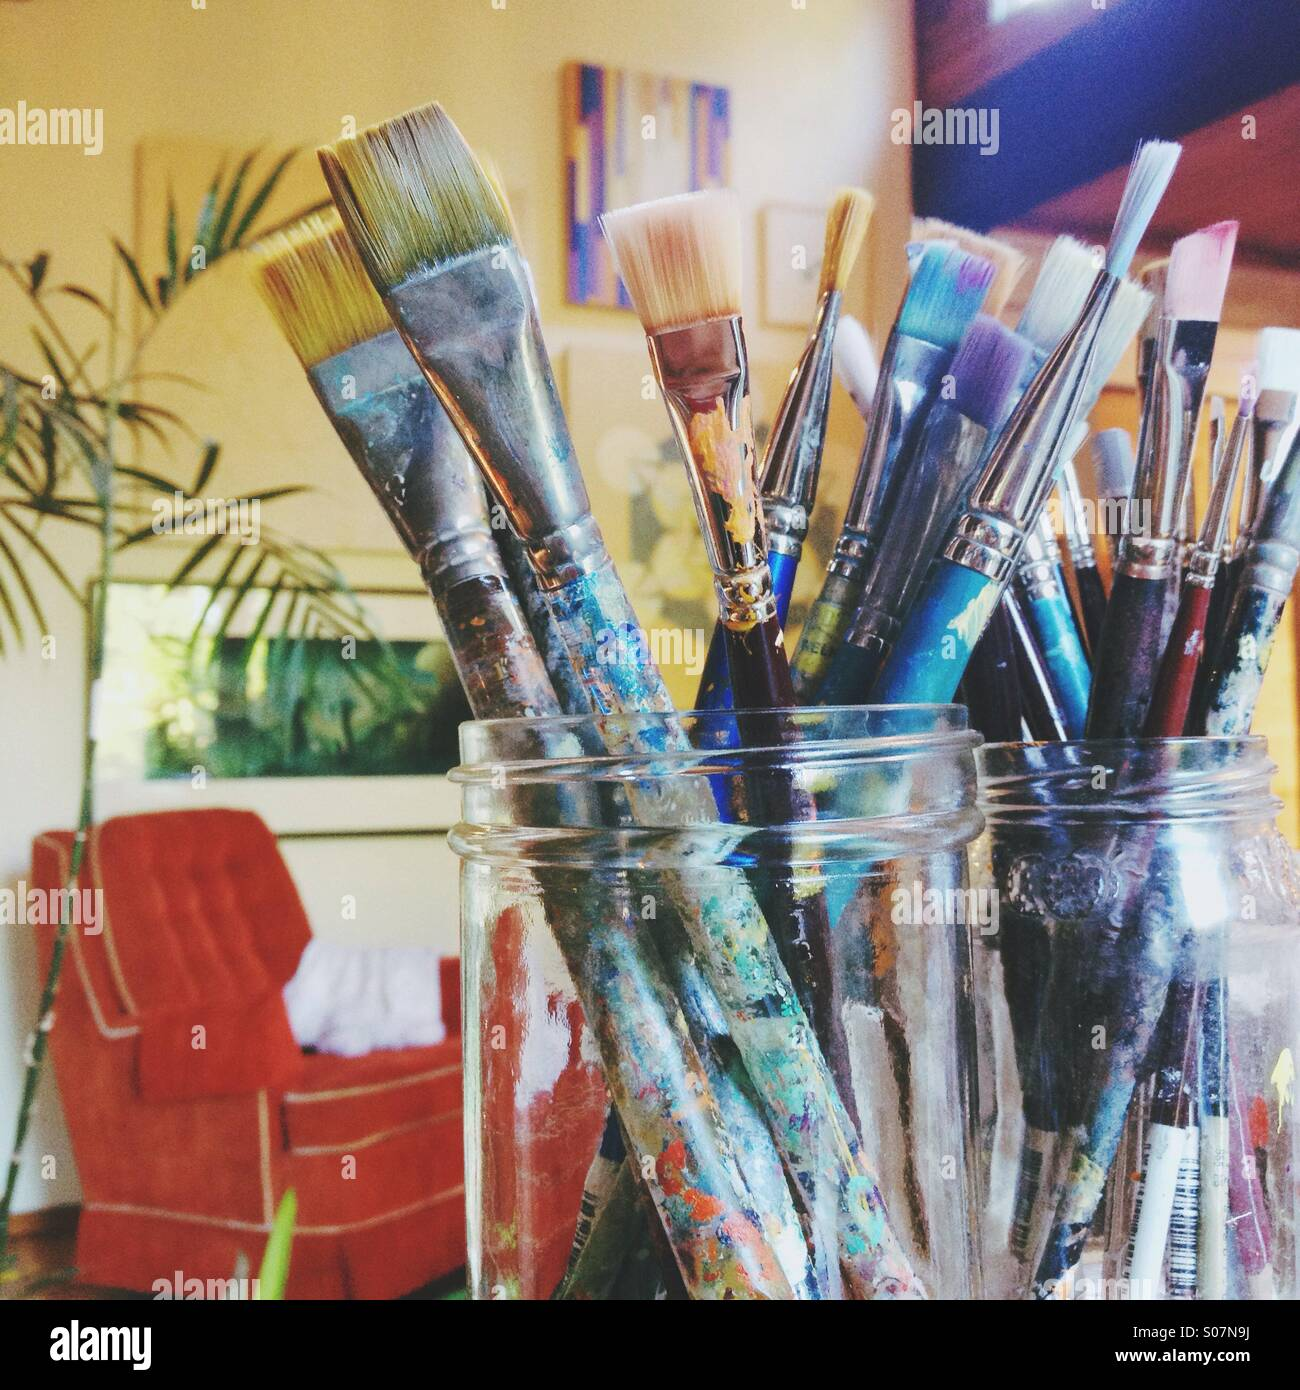 close up of artist s paintbrushes in jars with artsy bohemian